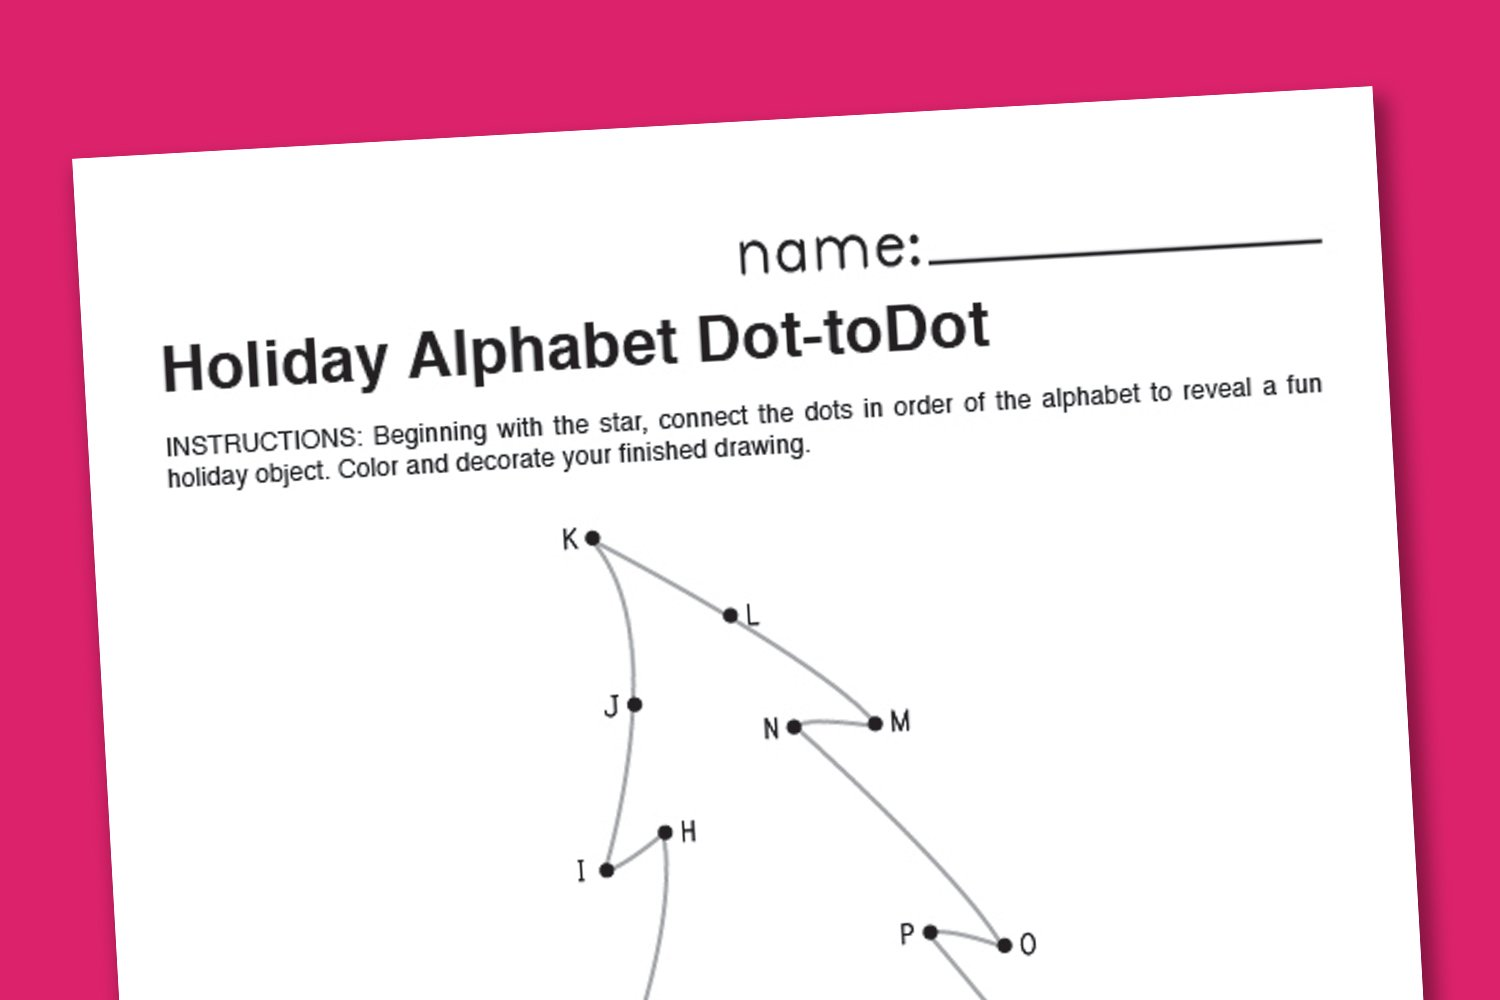 Christmas Alphabet Dot-to-Dot - Paging Supermom